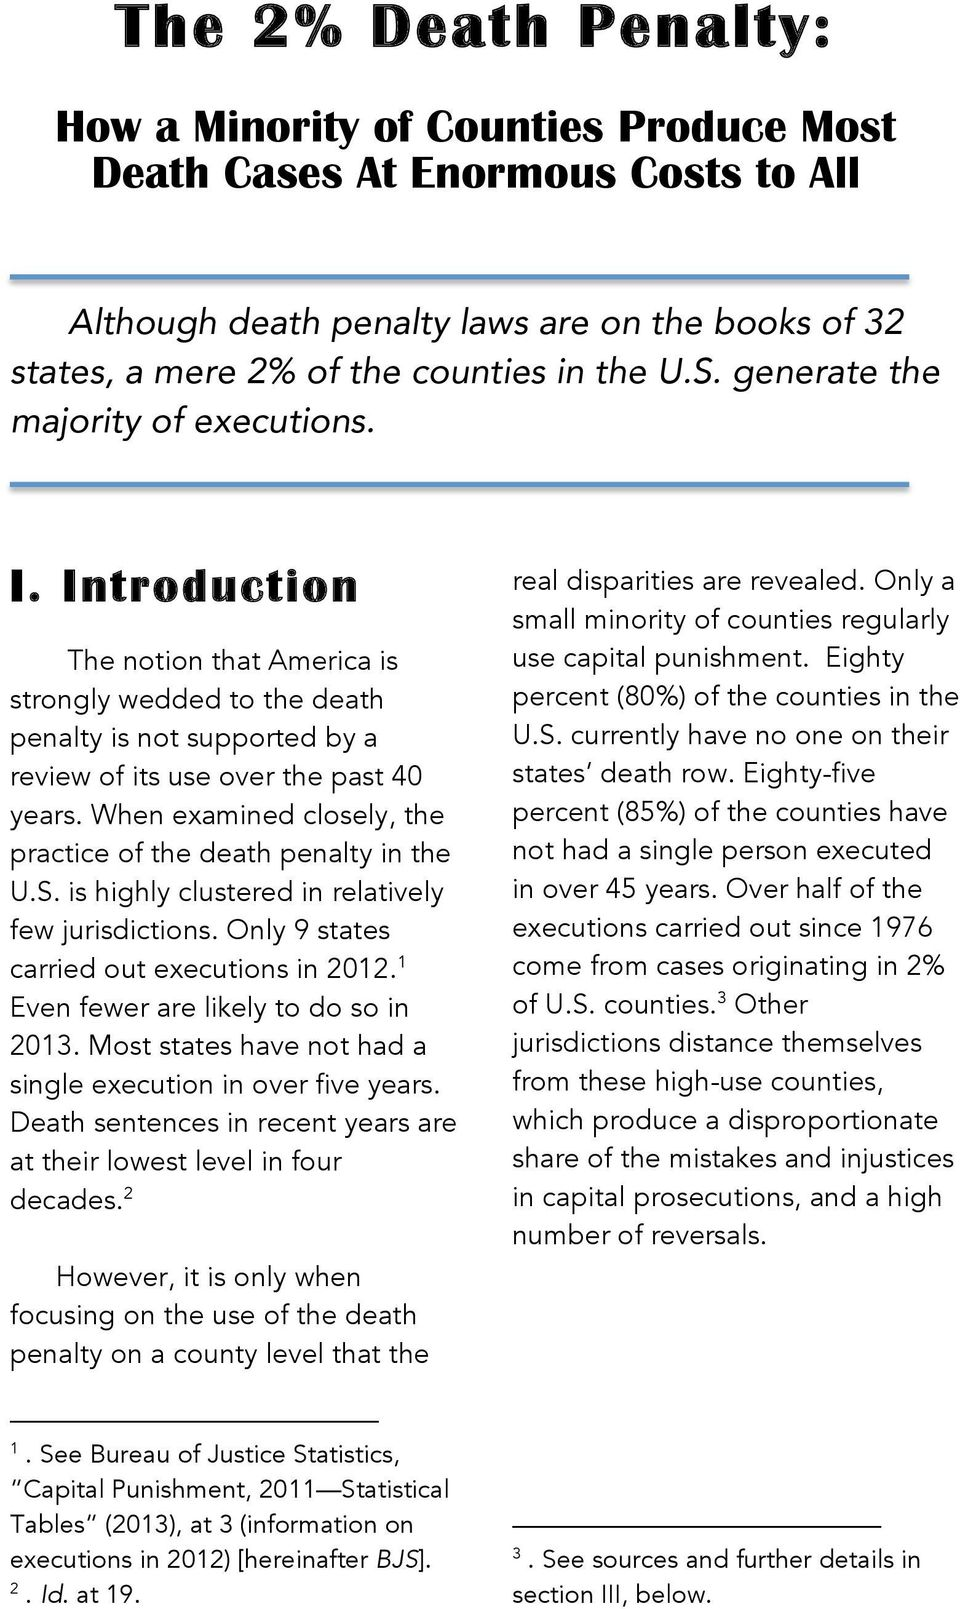 When examined closely, the practice of the death penalty in the U.S. is highly clustered in relatively few jurisdictions. Only 9 states carried out executions in 2012.